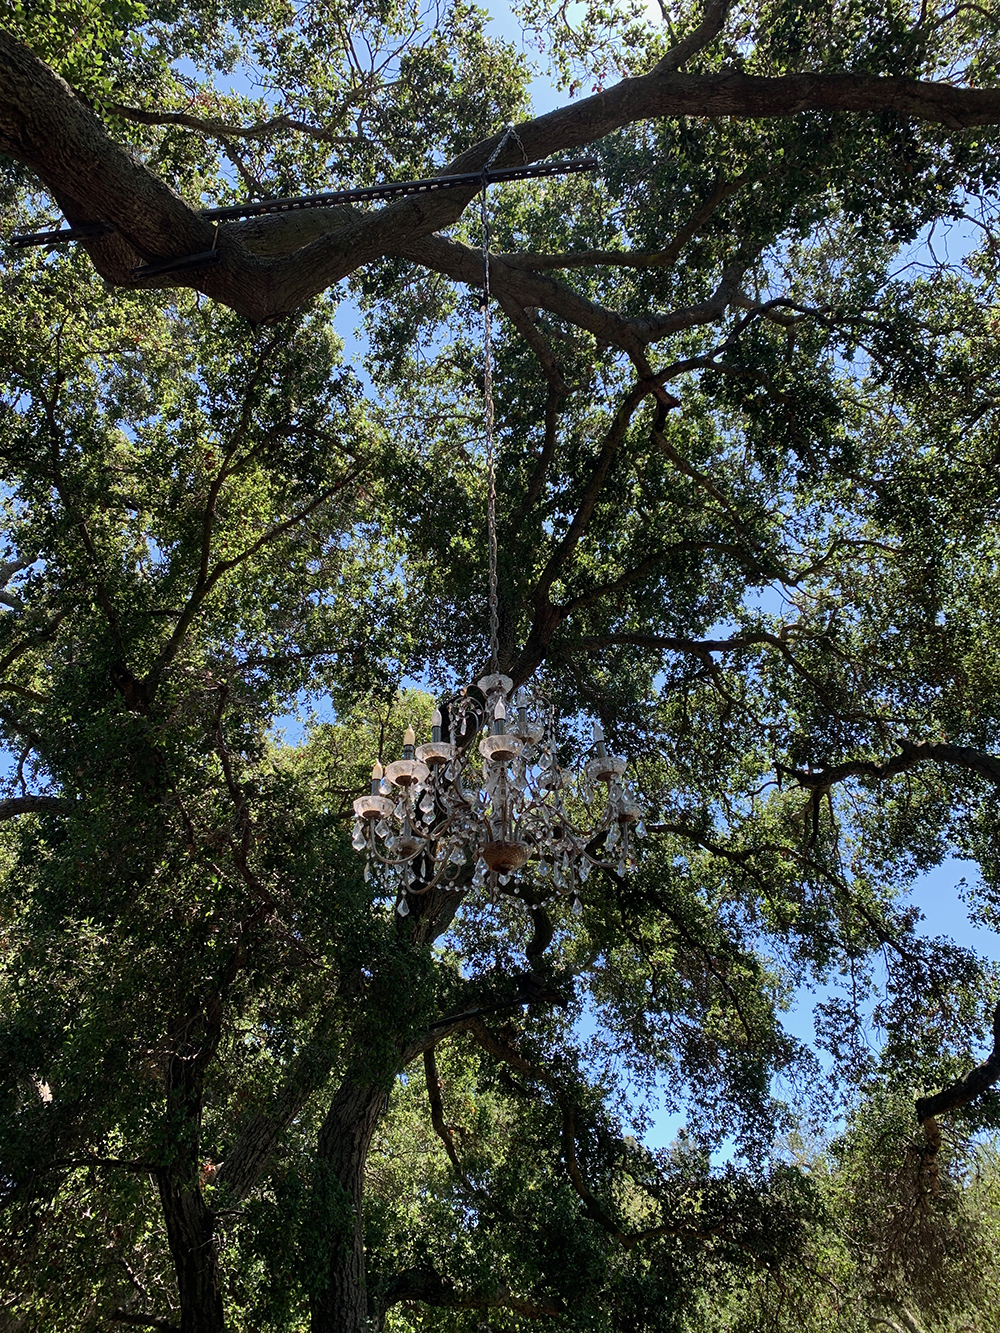 An outdoor chandelier hangs from a tree above.